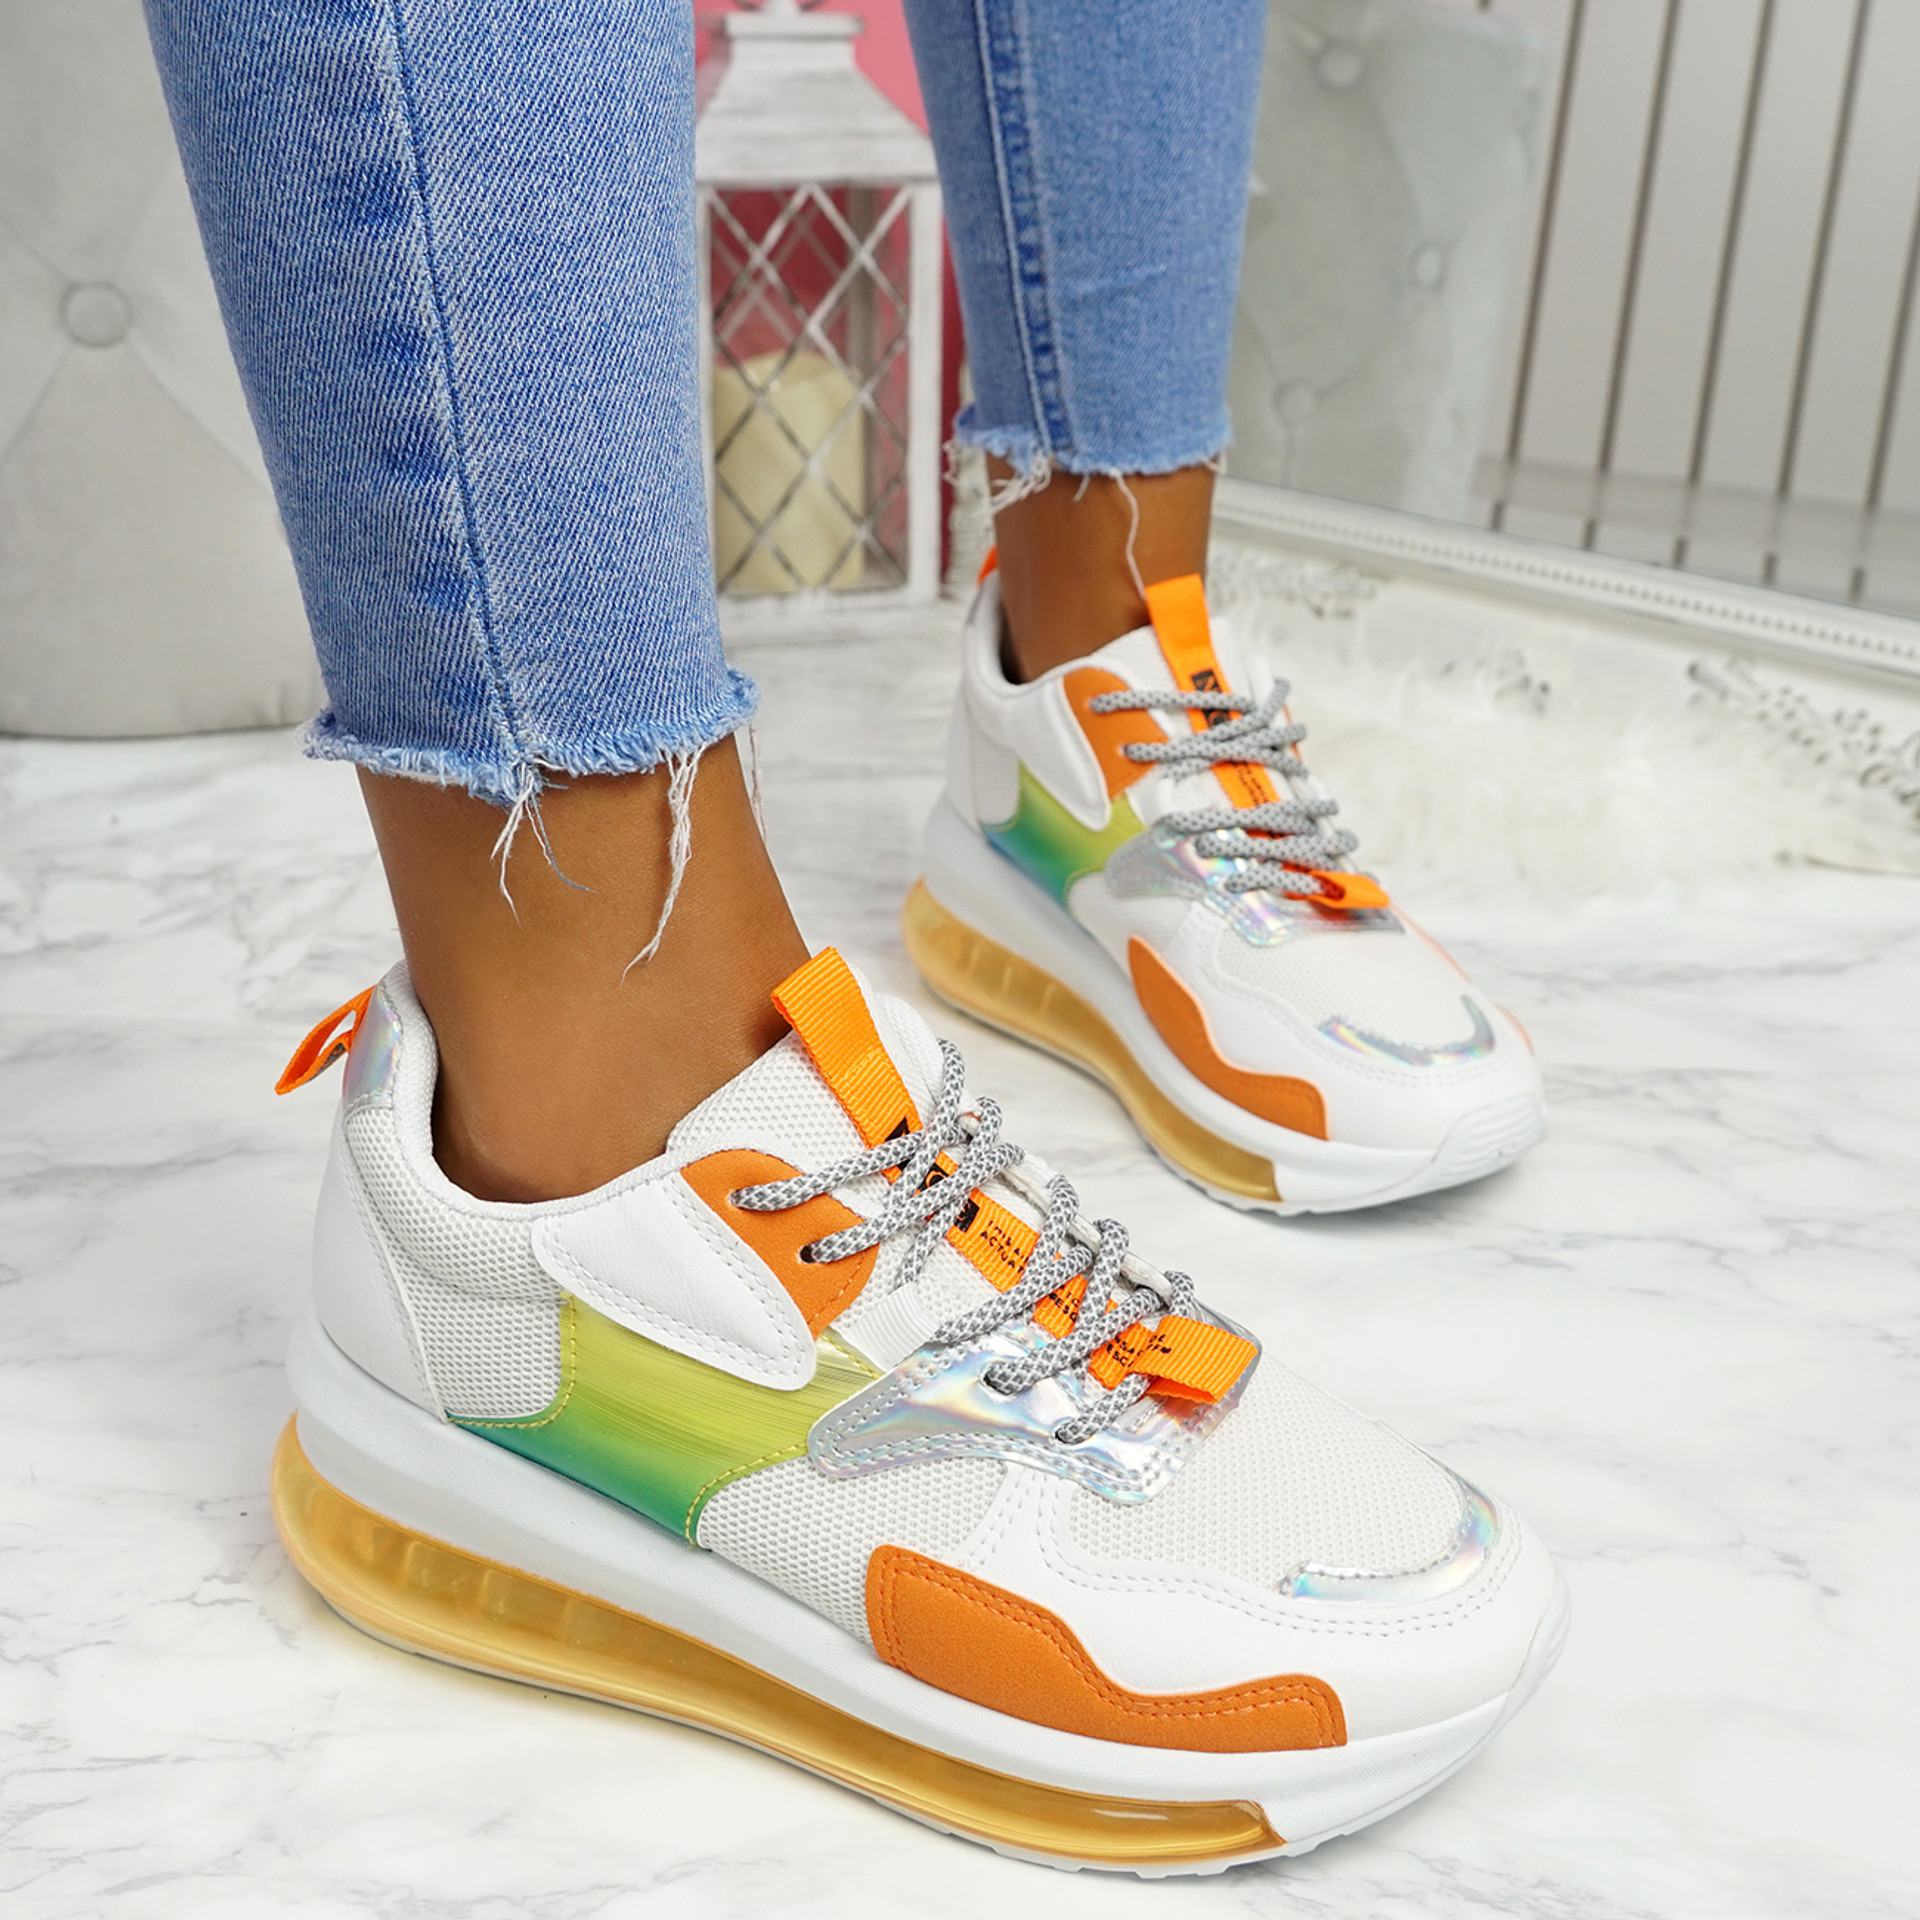 Rety White Orange Clear Sole Trainers